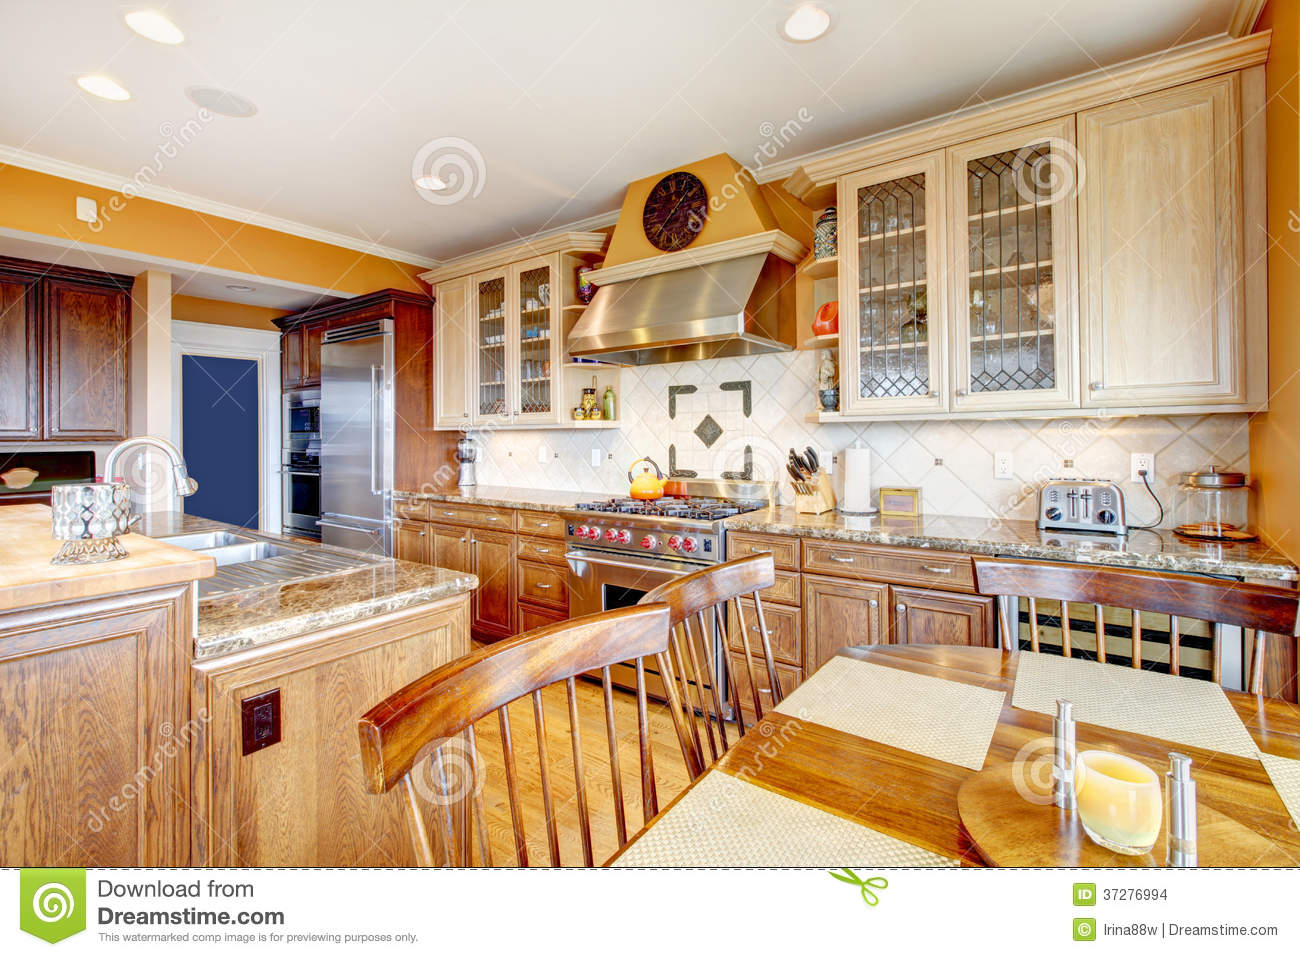 Brown And Yellow Kitchen With Dining Table Set Stock Photo Image Of House Marble 37276994